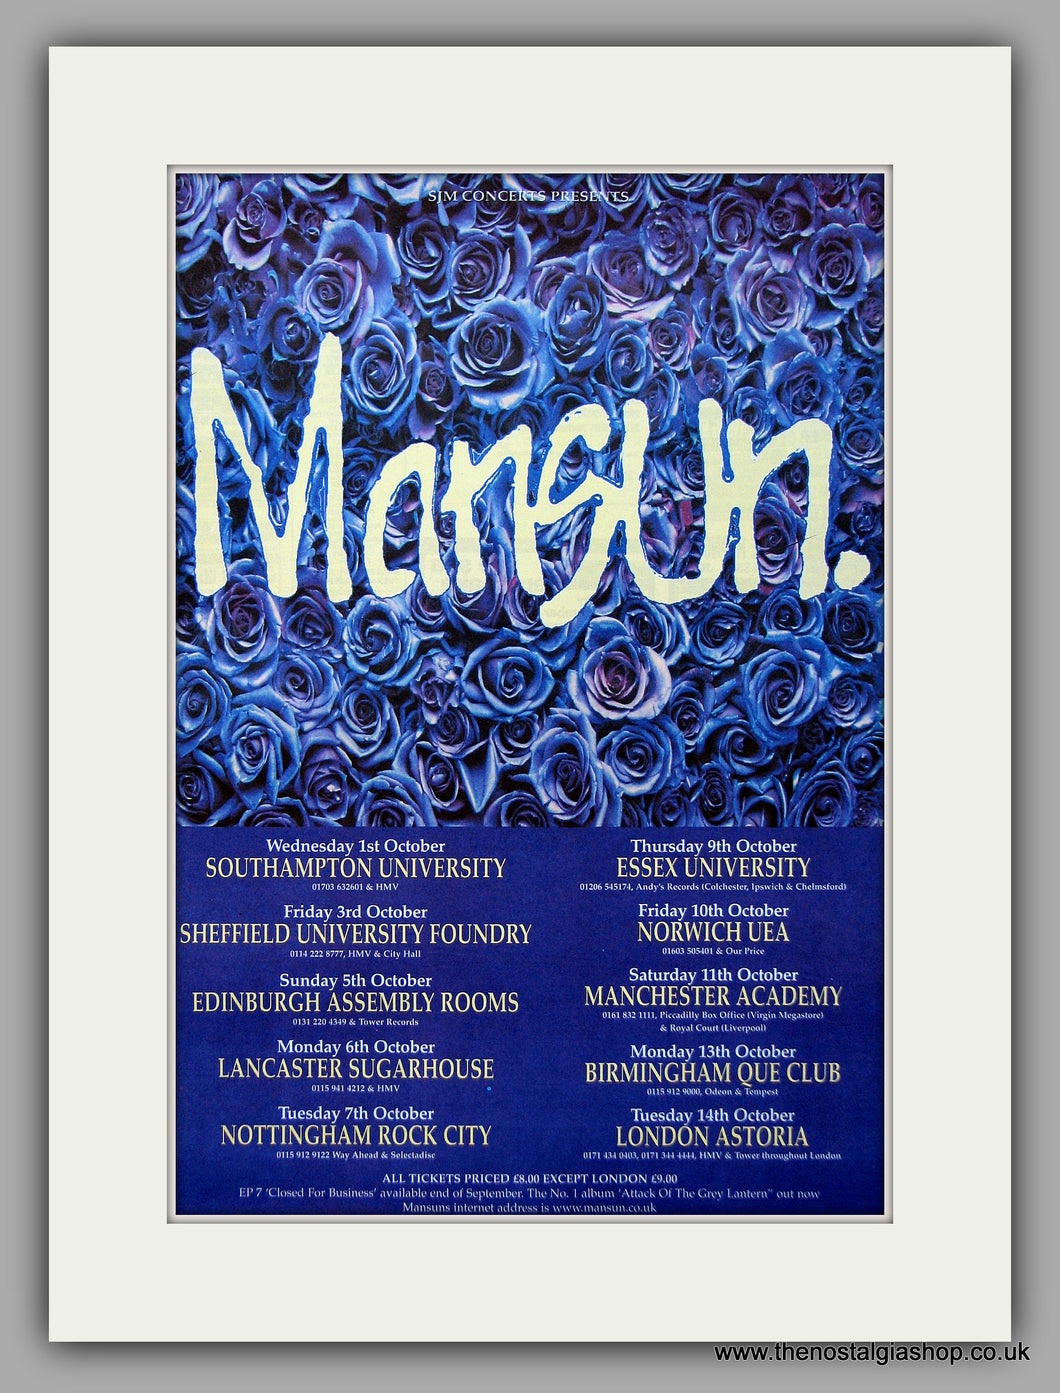 Mansun - Tour Dates. Original Vintage Advert 1997 (ref AD10897)